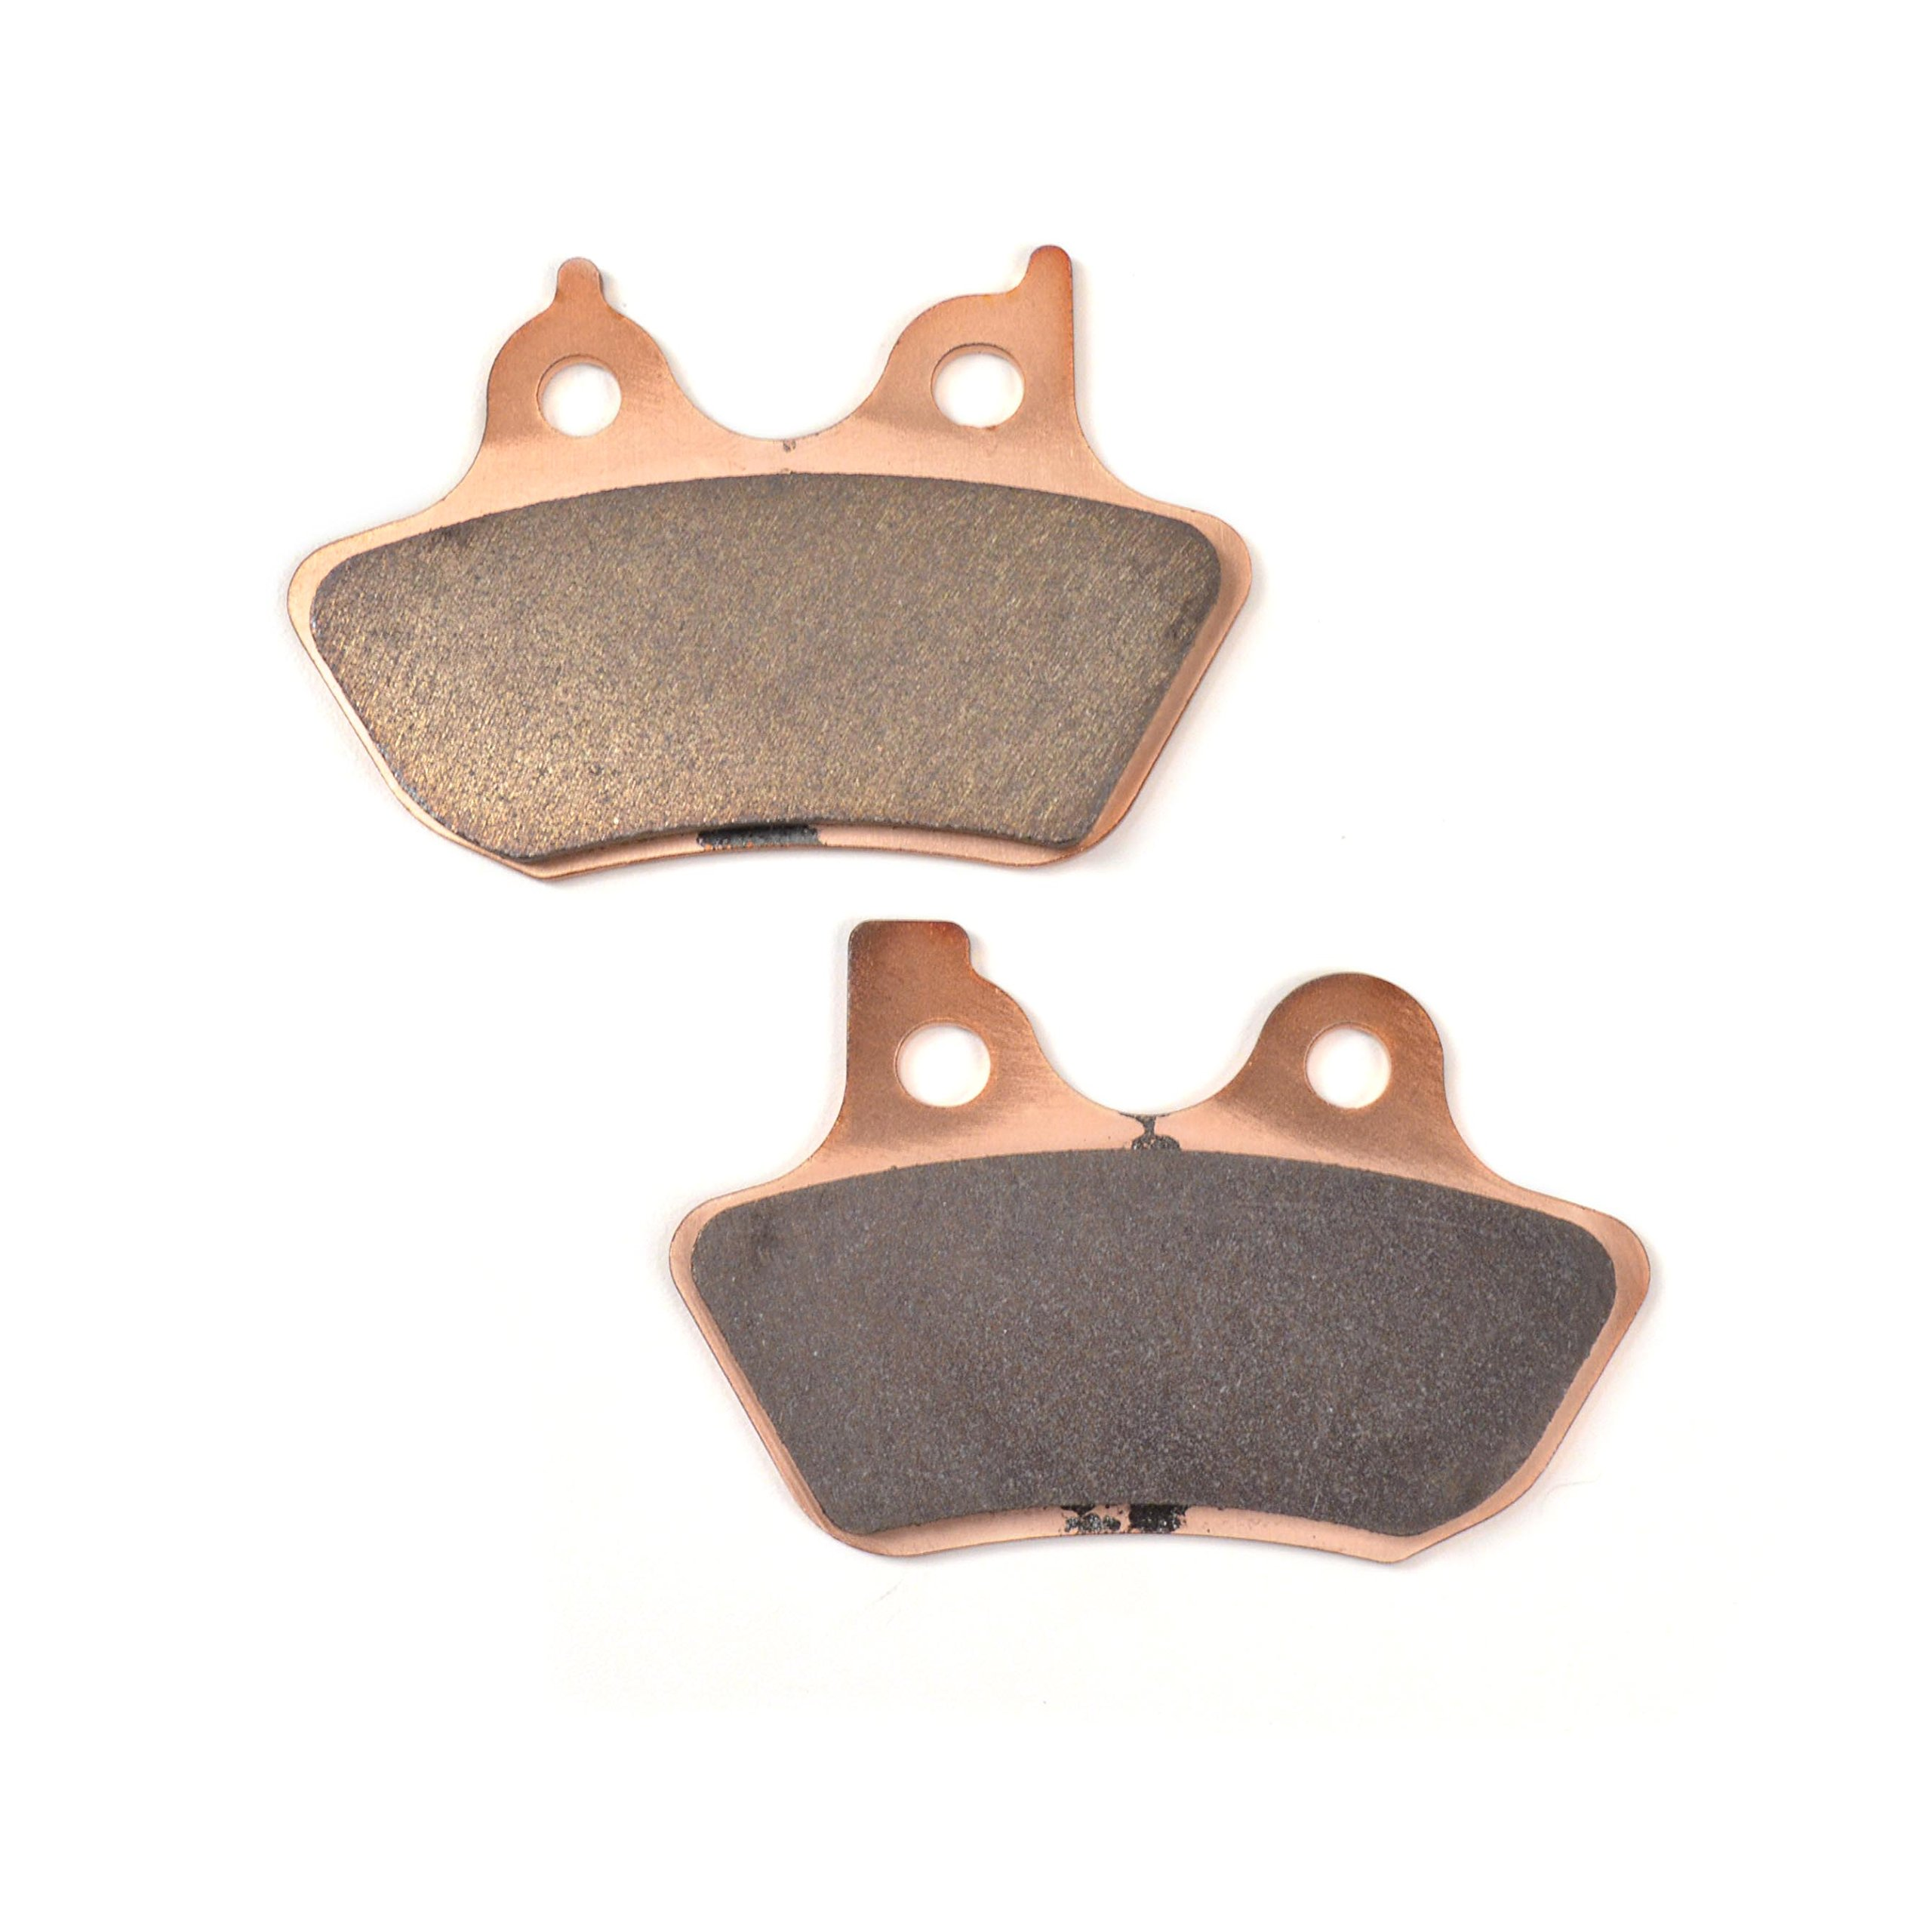 Harley Davidson XL Sportster 1200 Custom/Sport 00-03 Front Performance Brake Pads by Niche Cycle Supply